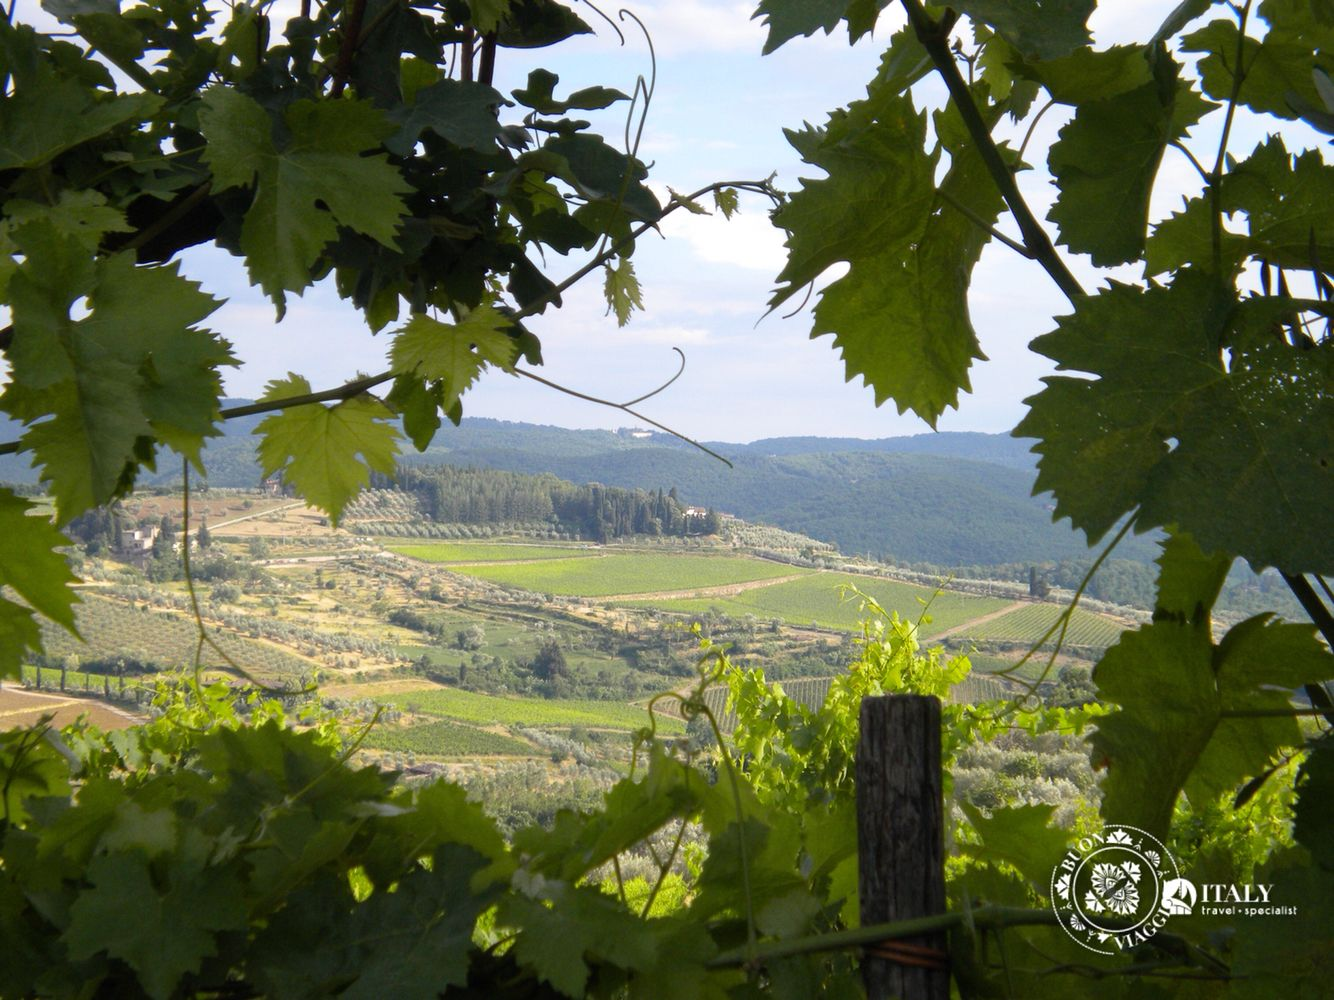 Hills of Tuscany, vineyards and olive groves